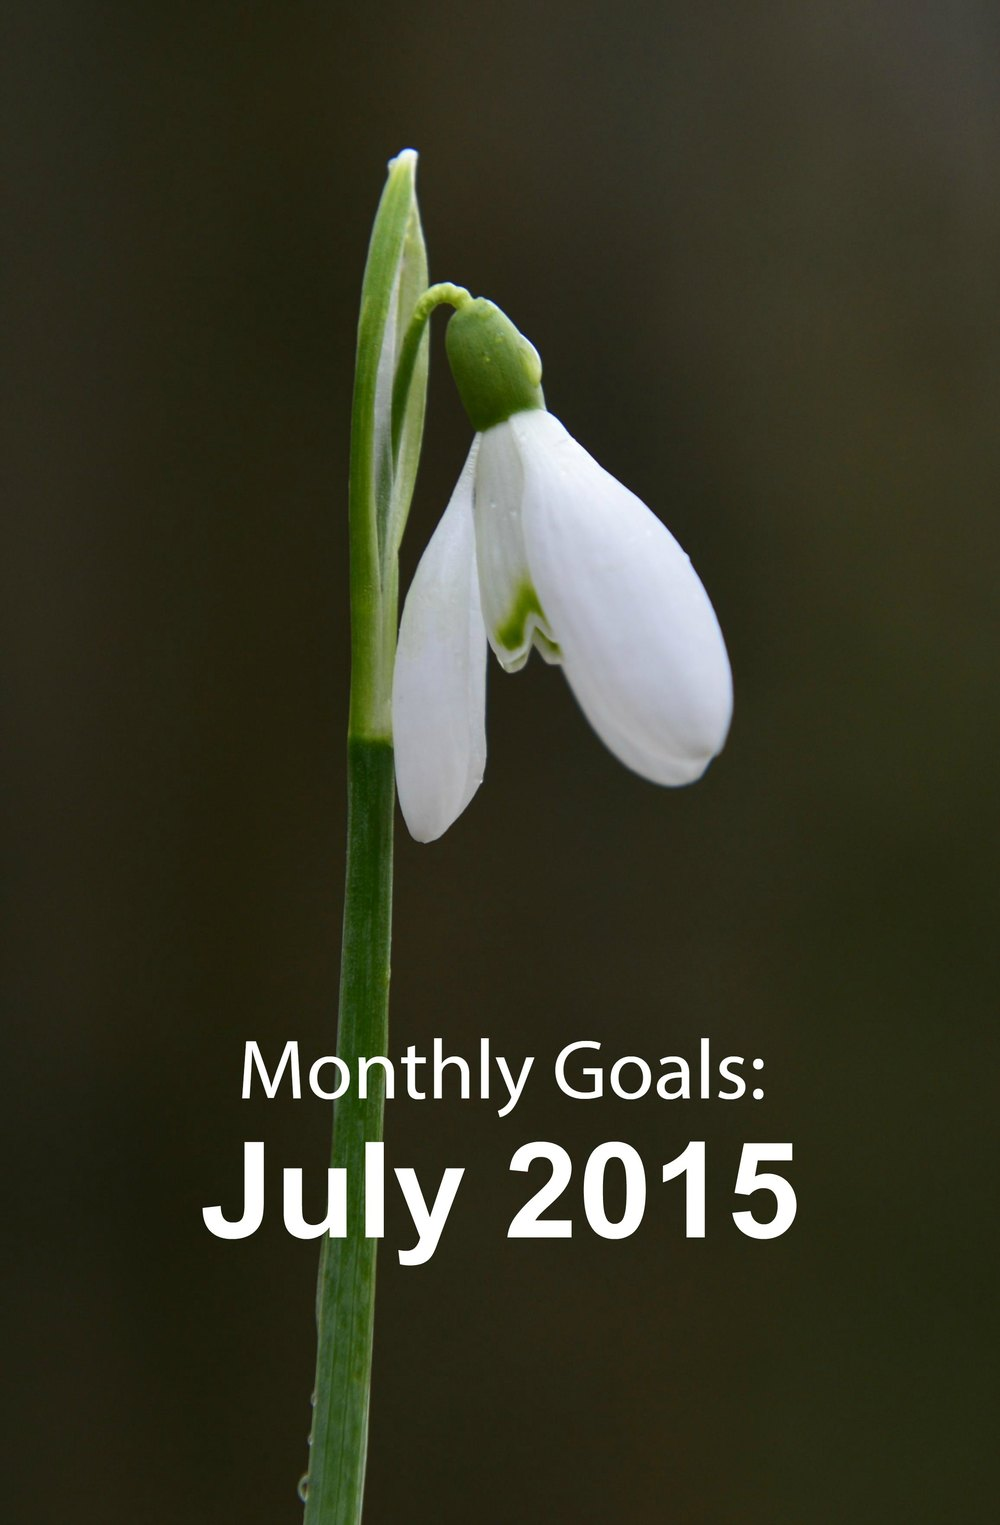 Monthly Goals: July 2015 - Paper Swallow Events